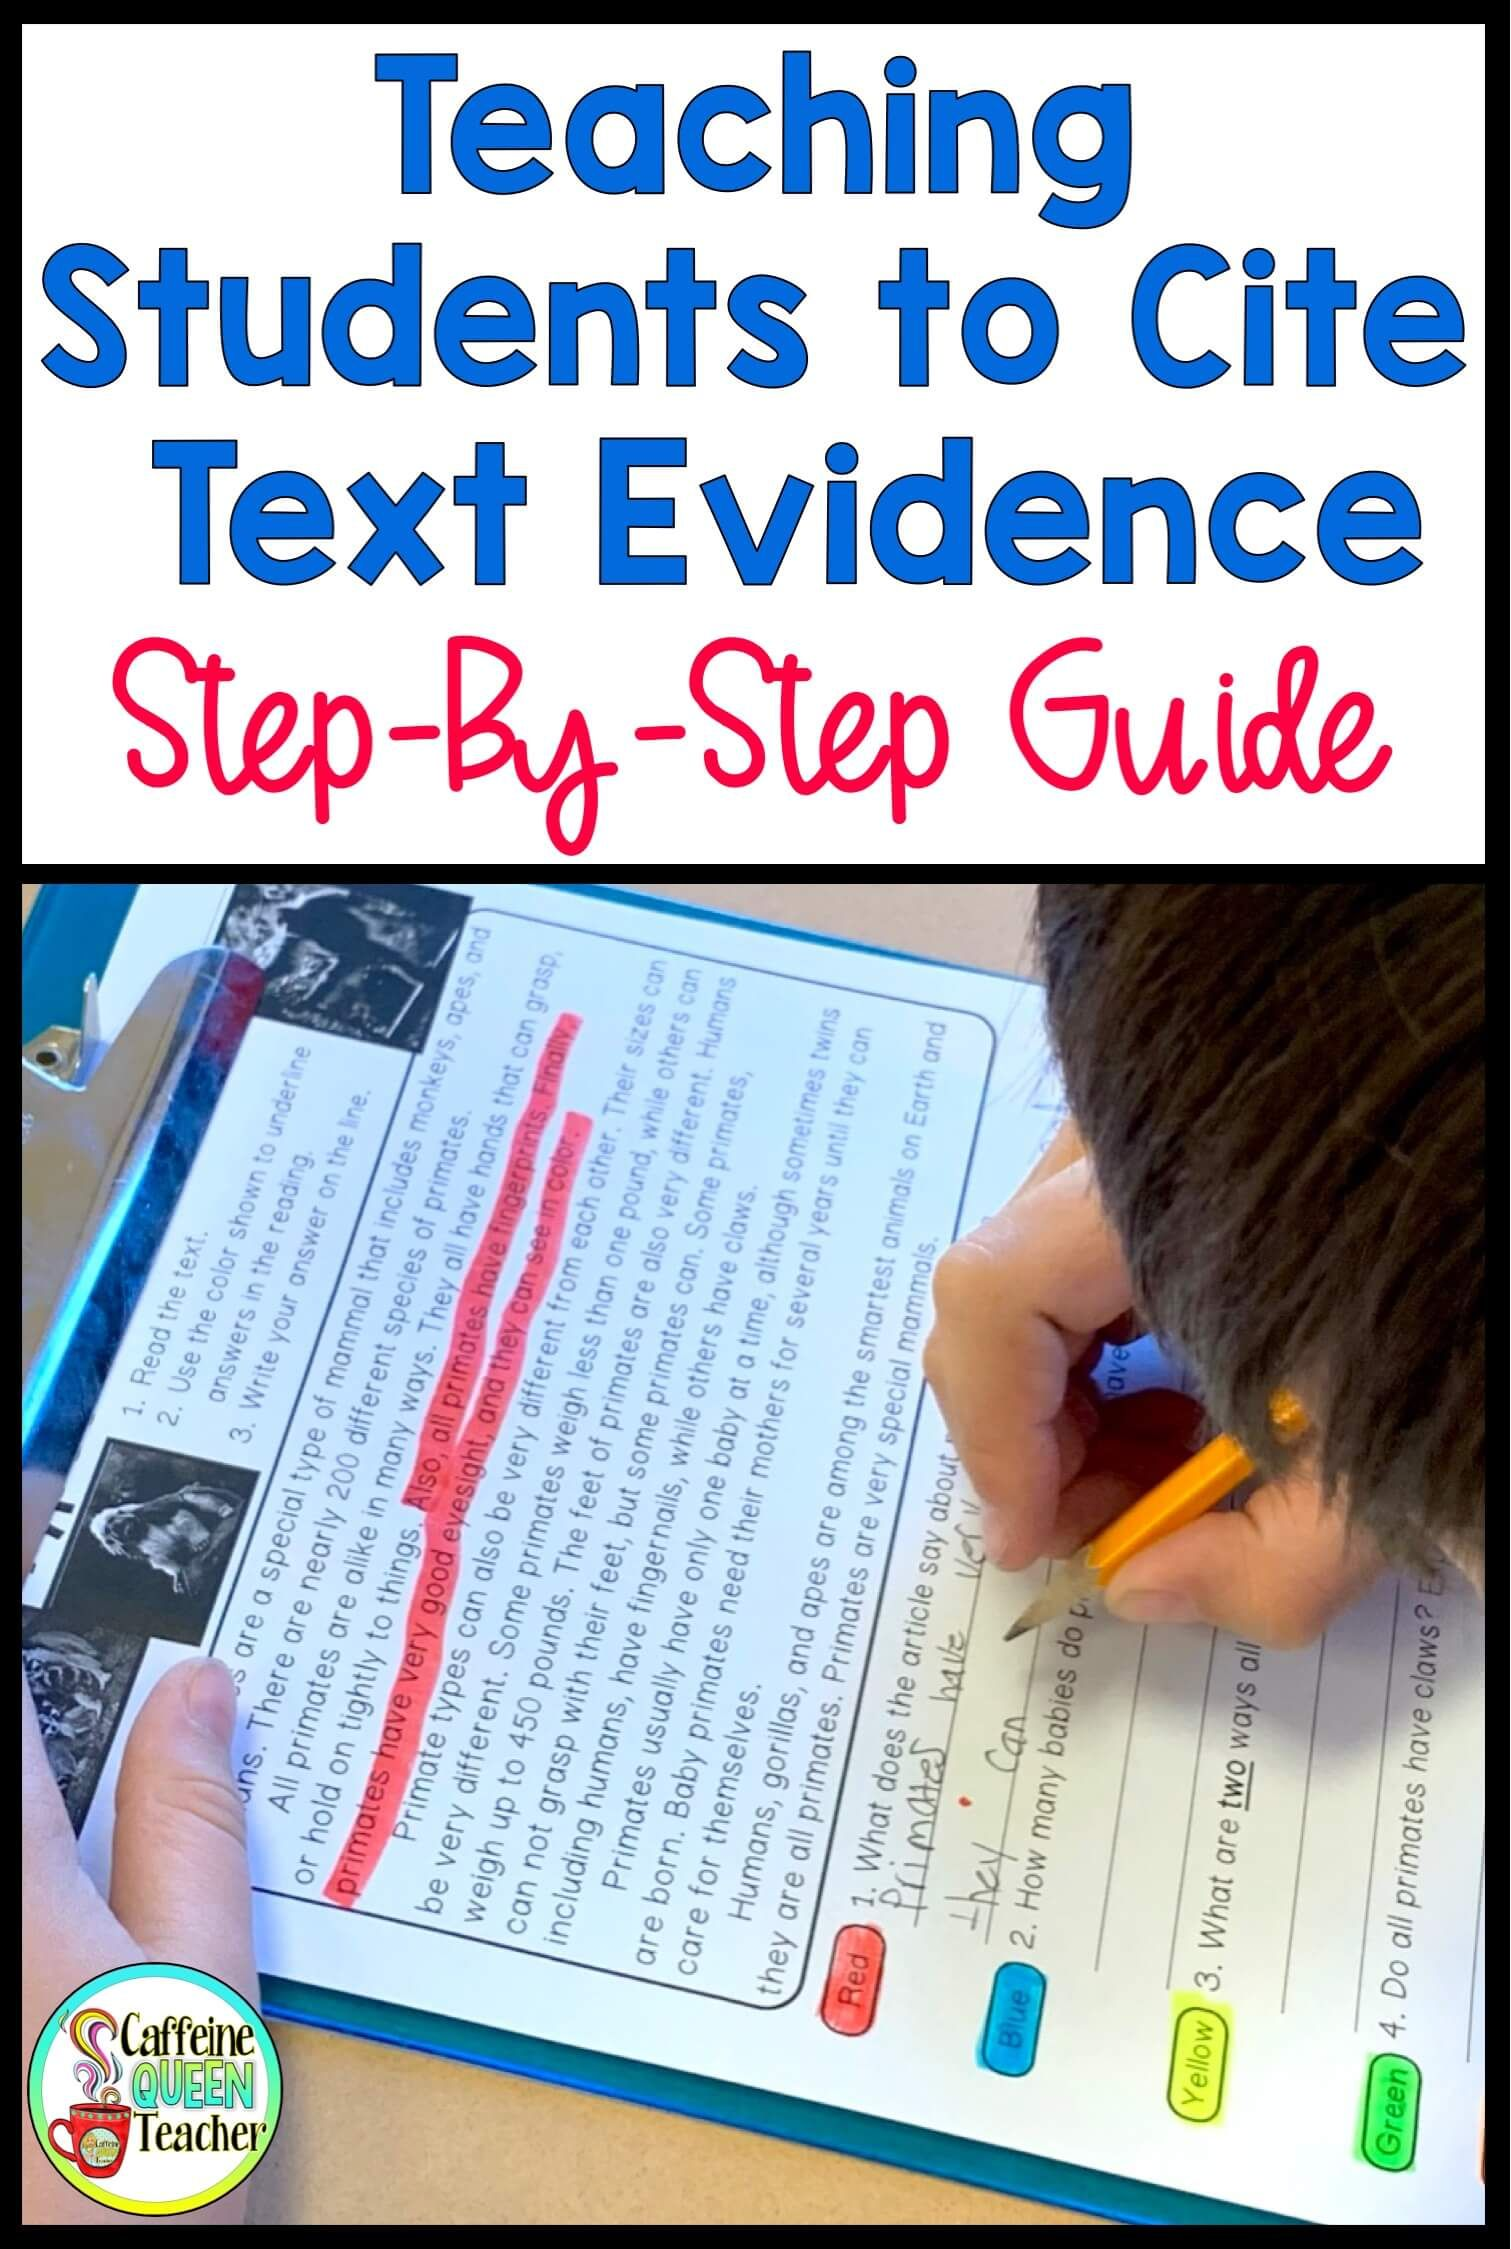 How to Teach Students to Cite Text Evidence - Caffeine Queen Teacher